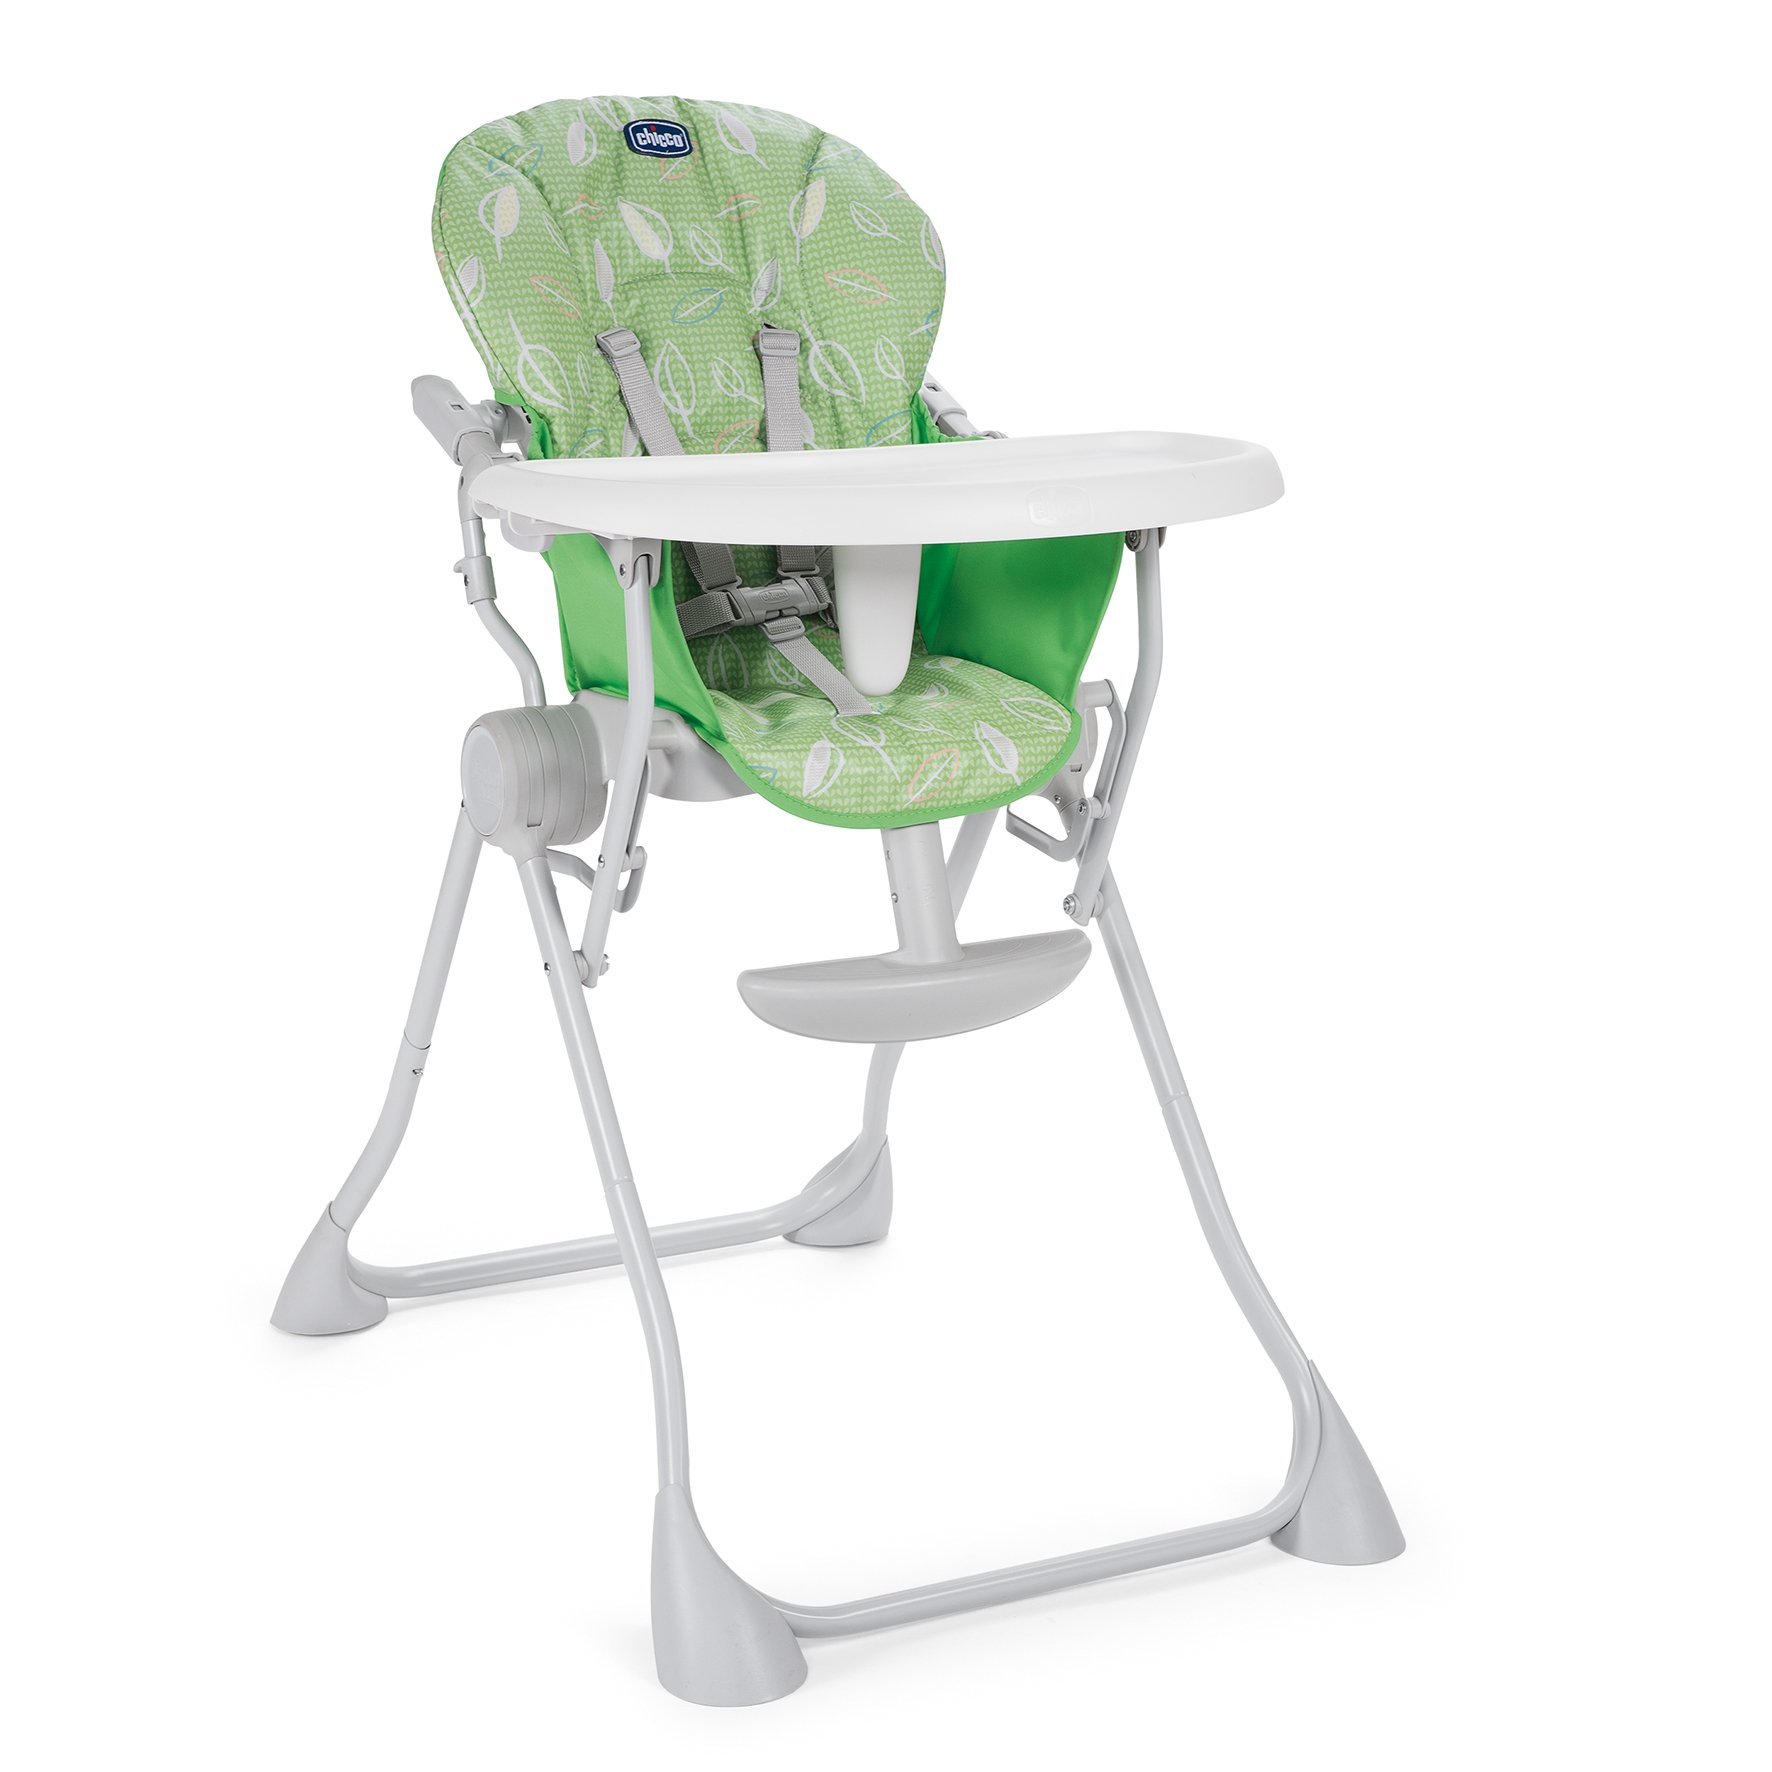 green high chair teak lounge chairs chicco highchair pocket meal 2019 summer buy at kidsroom design